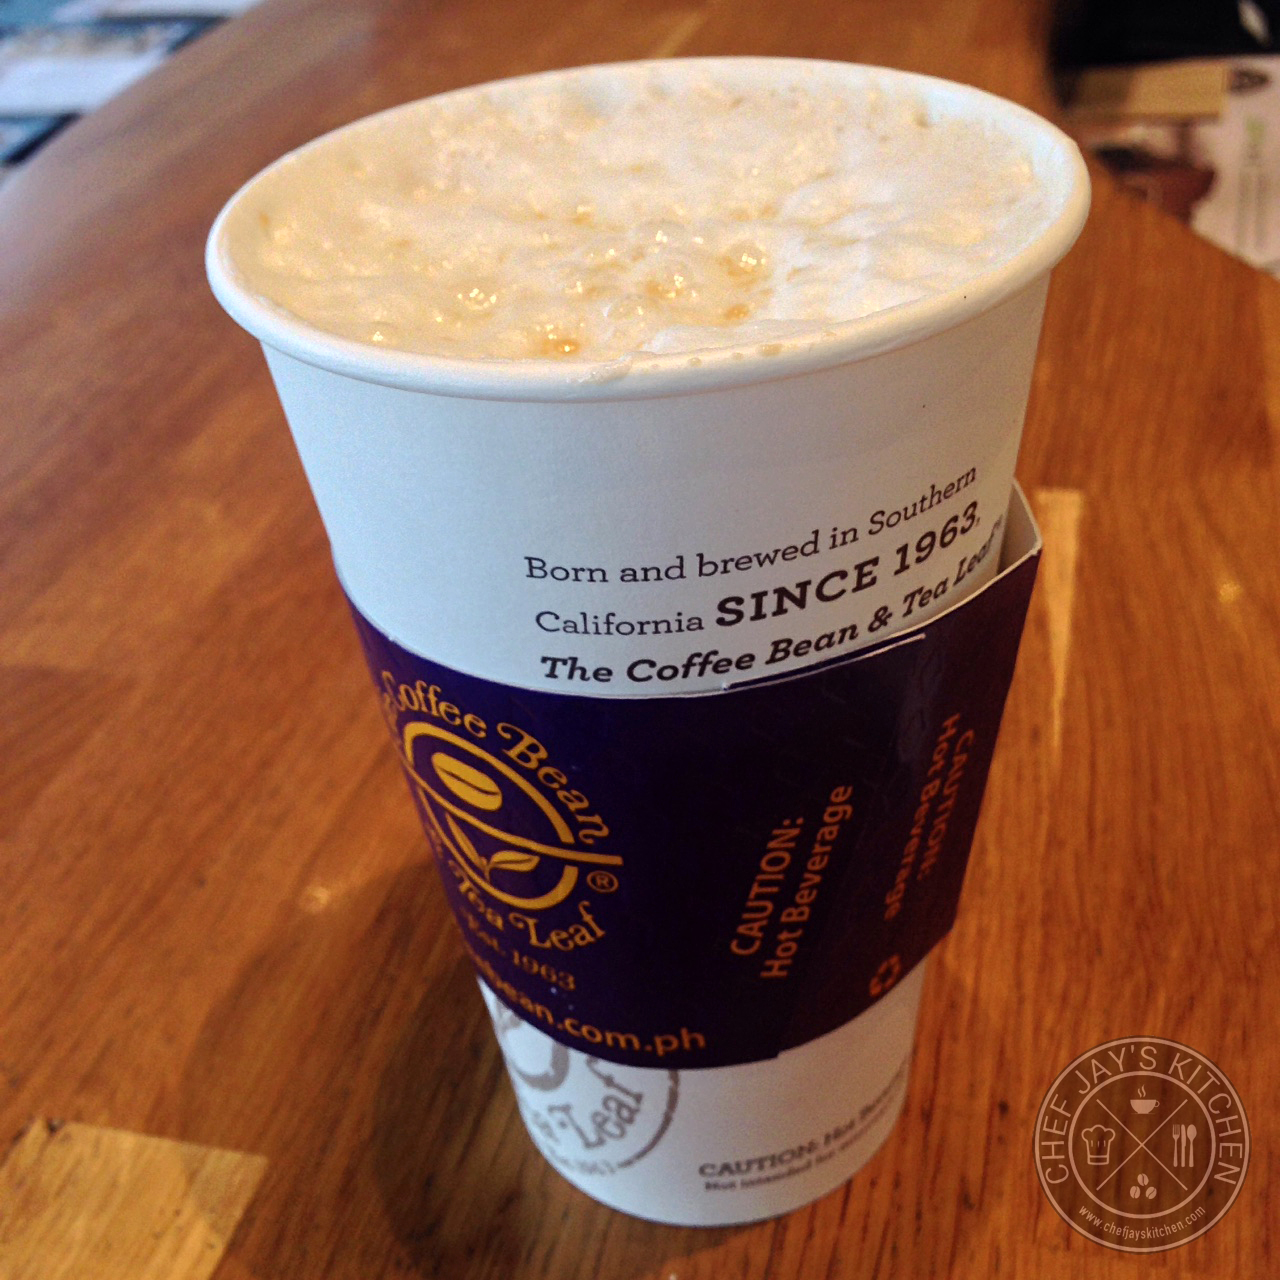 The Coffee Bean and Tea Leaf's Toffee Nut Latte and Iced ...